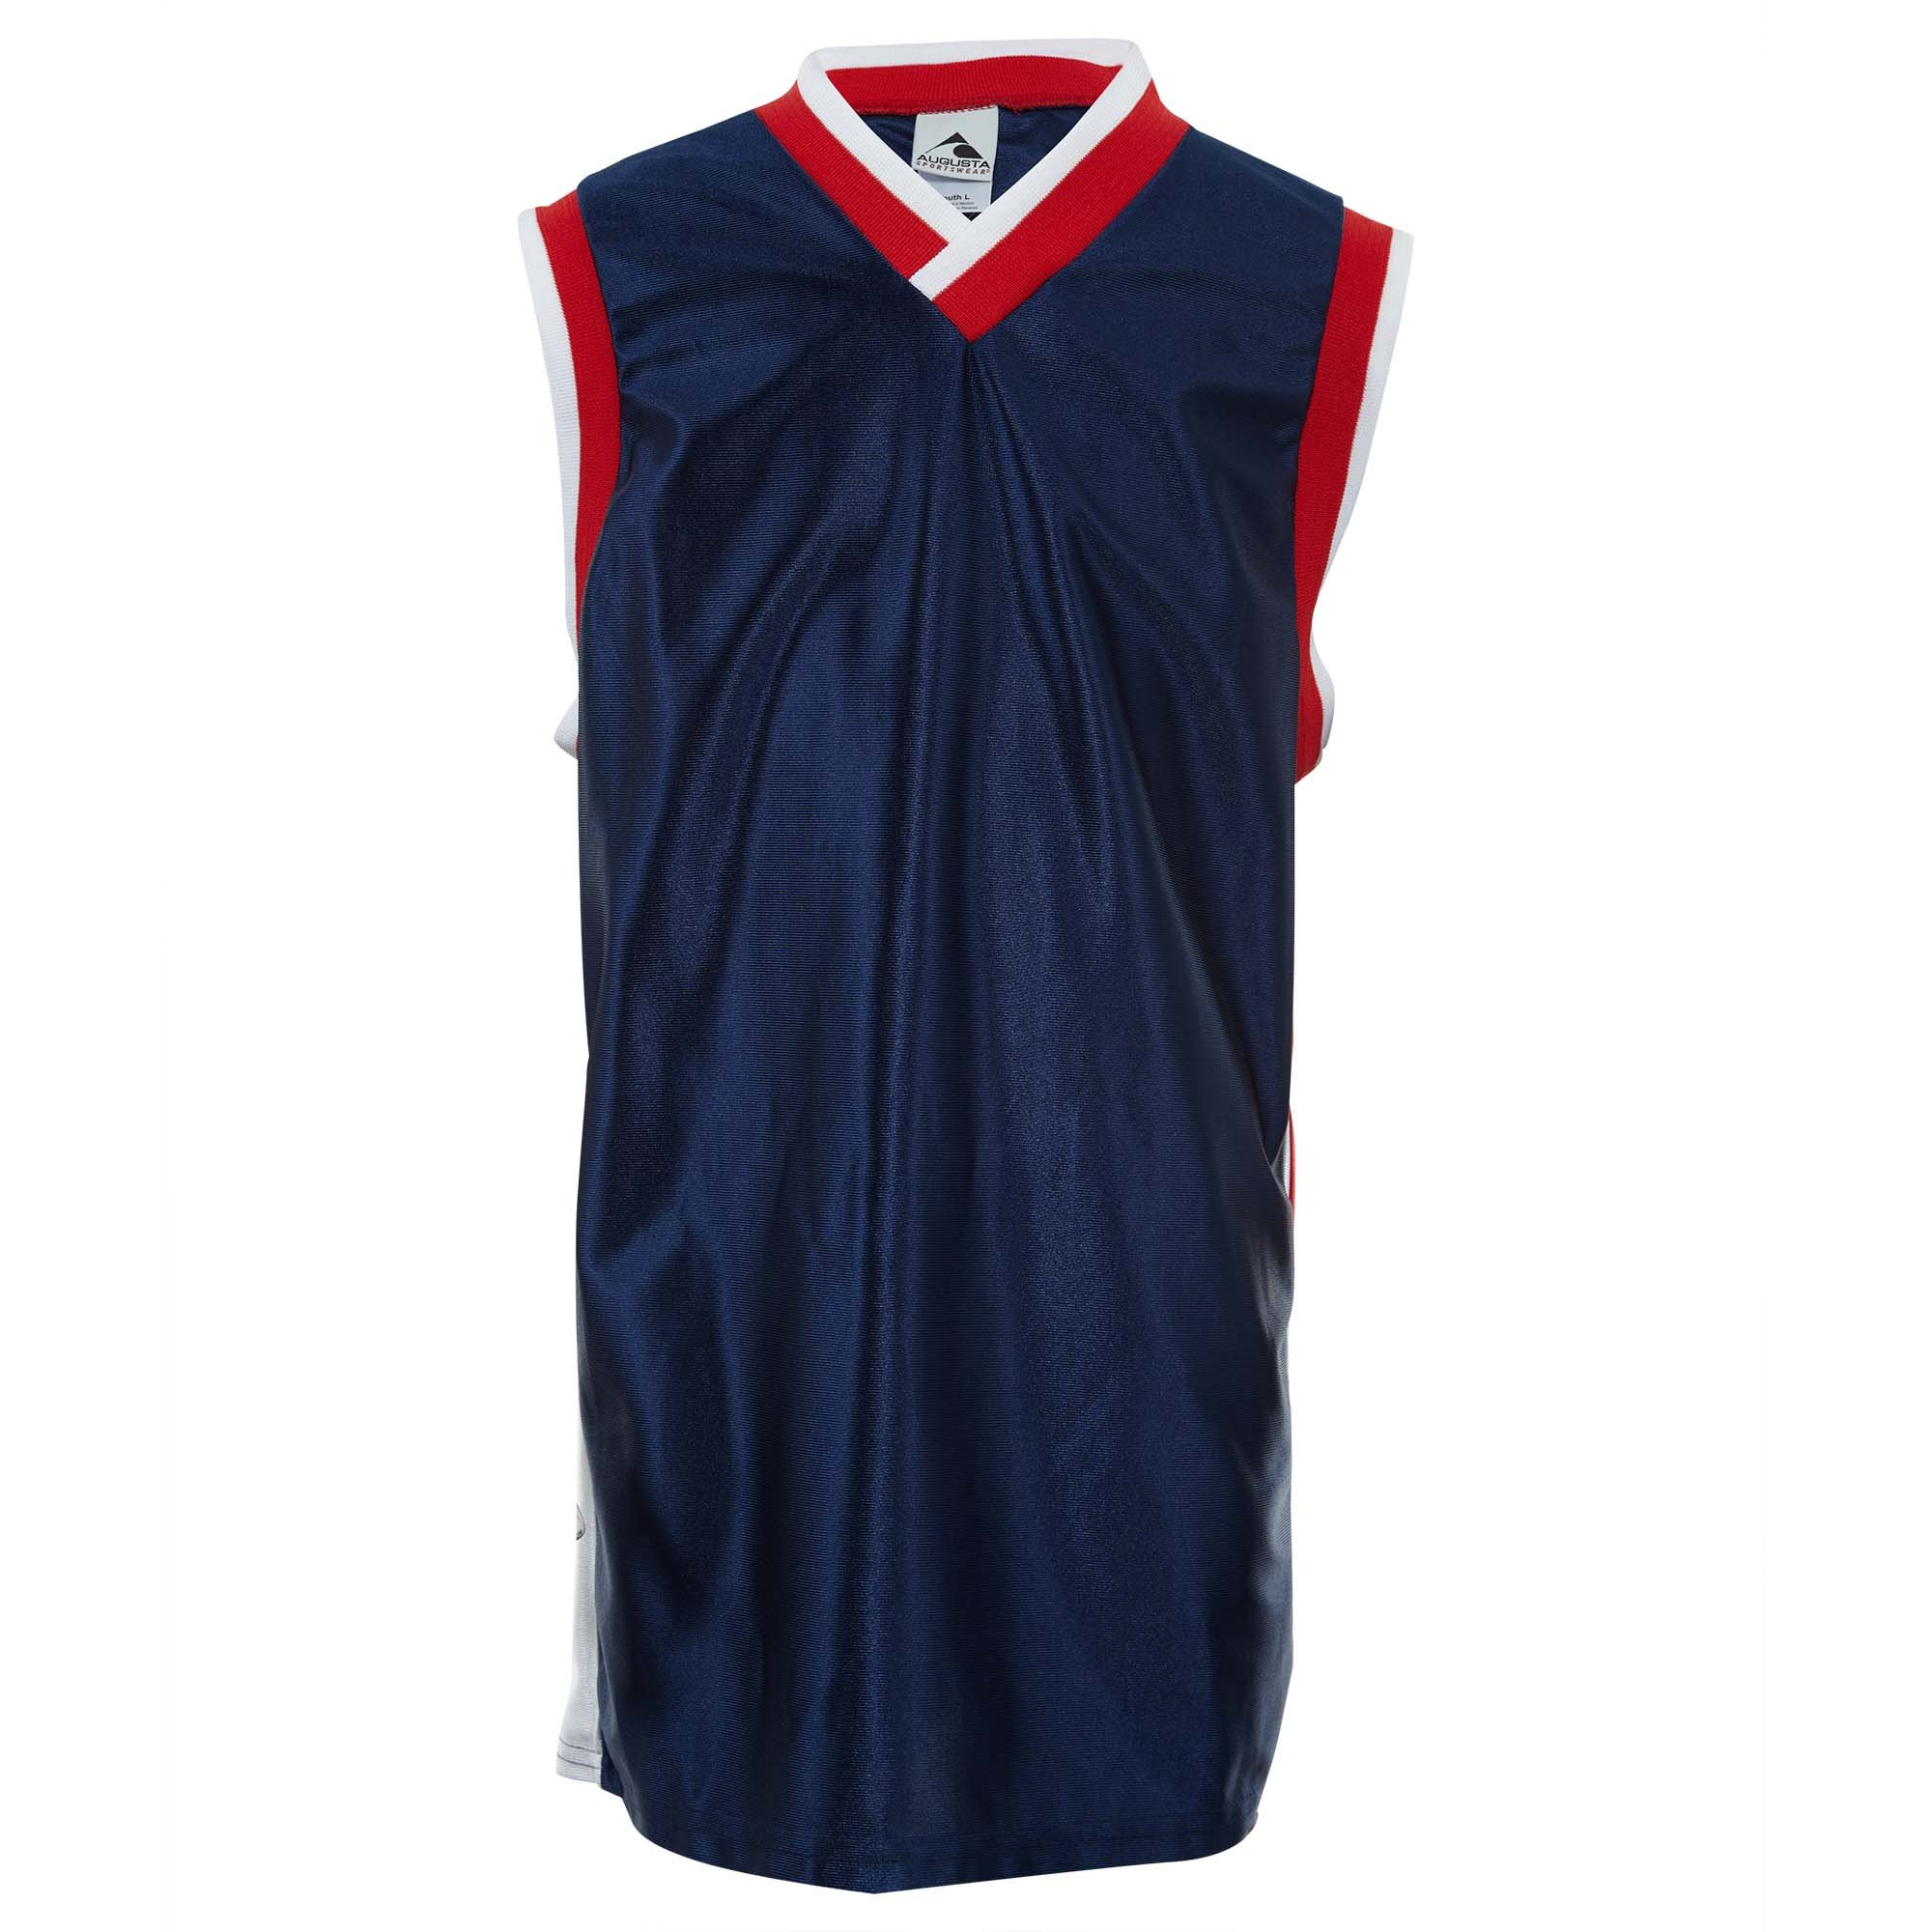 Augustia Sportswear Youth Tri-Color Dazzle Sleeveless Basketball Game Jersey Big Kids Style: 778-118 NV/WH/RD Size: L by Augustia